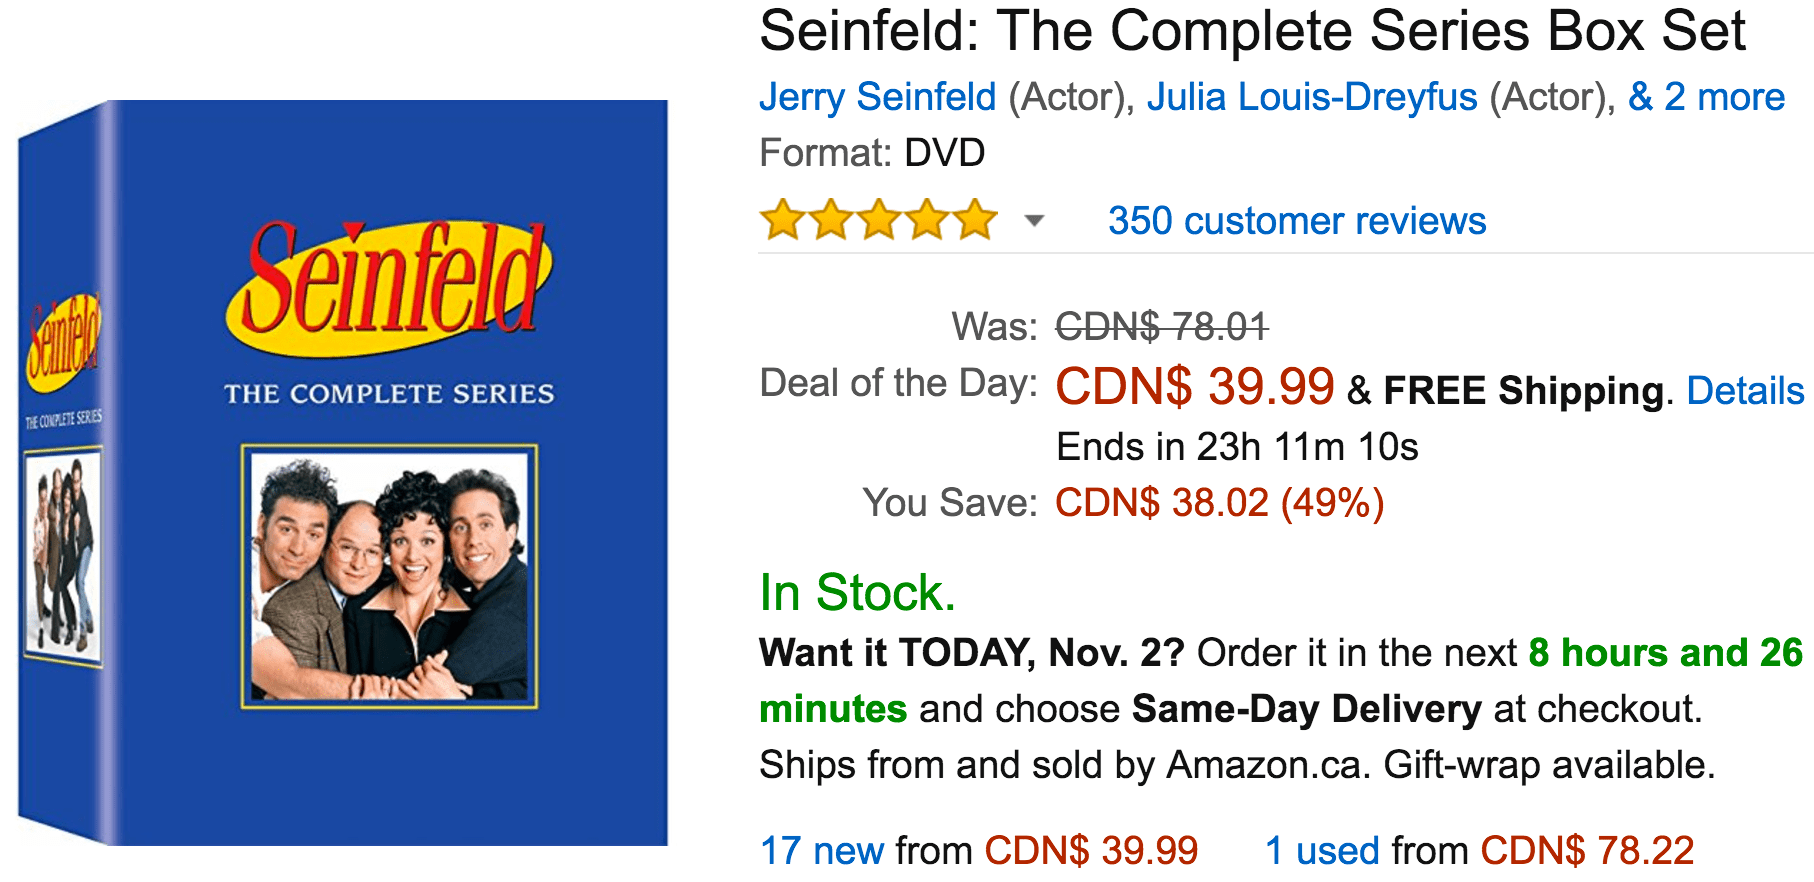 Amazon Canada Deals Of The Day: Save 49% On Seinfeld: The Complete Series Box Set, 71% on Anker 40W/8A 5-Port USB Charger & More Offers